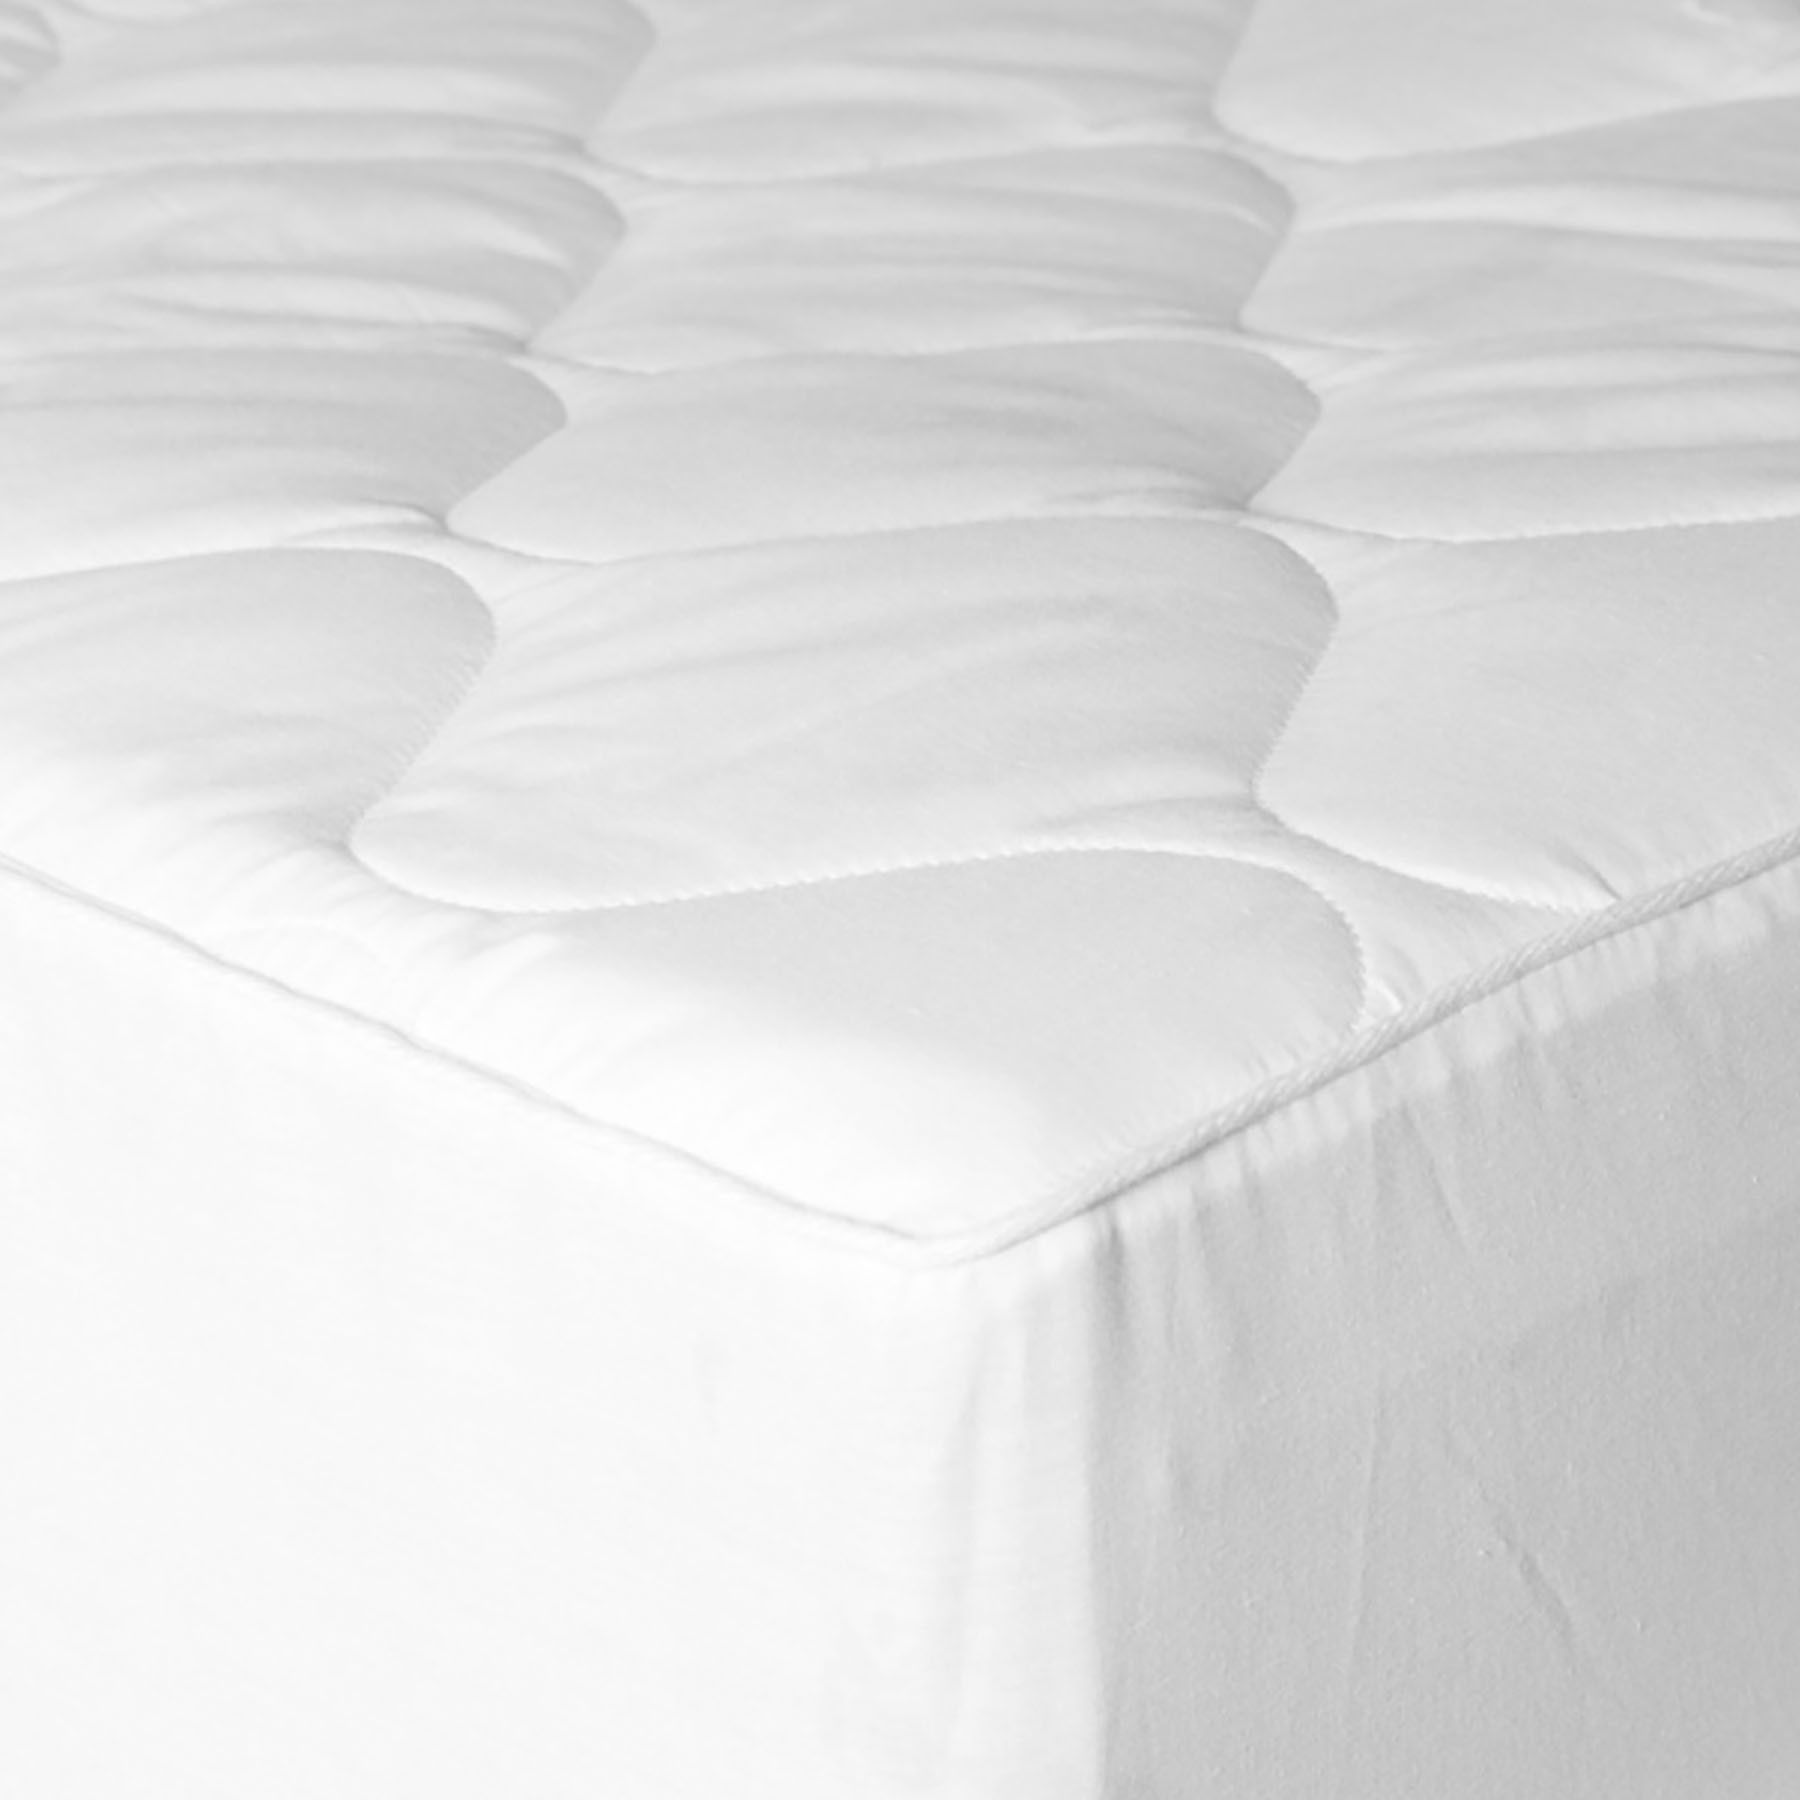 chiropractic mattresses by springwall springwall is proud to